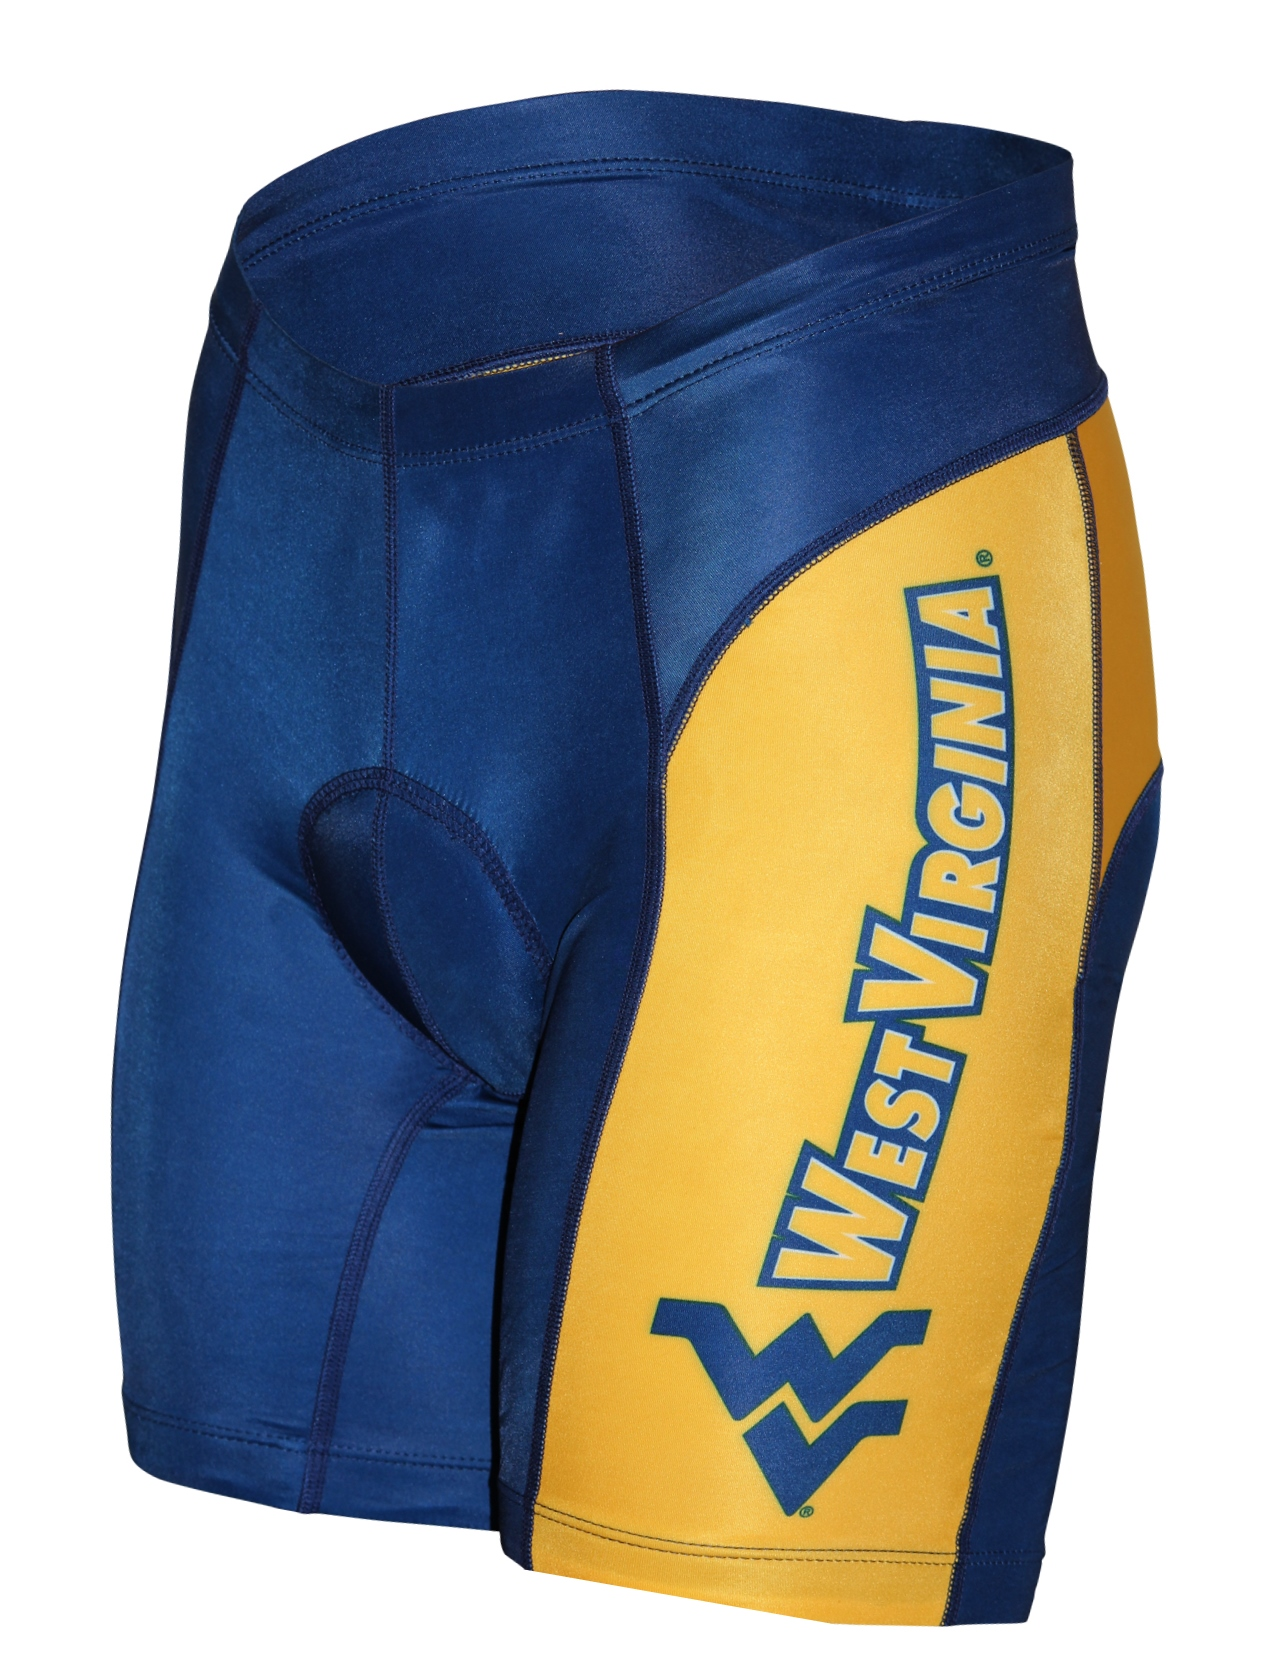 West Virginia University Mountaineers Cycling Shorts